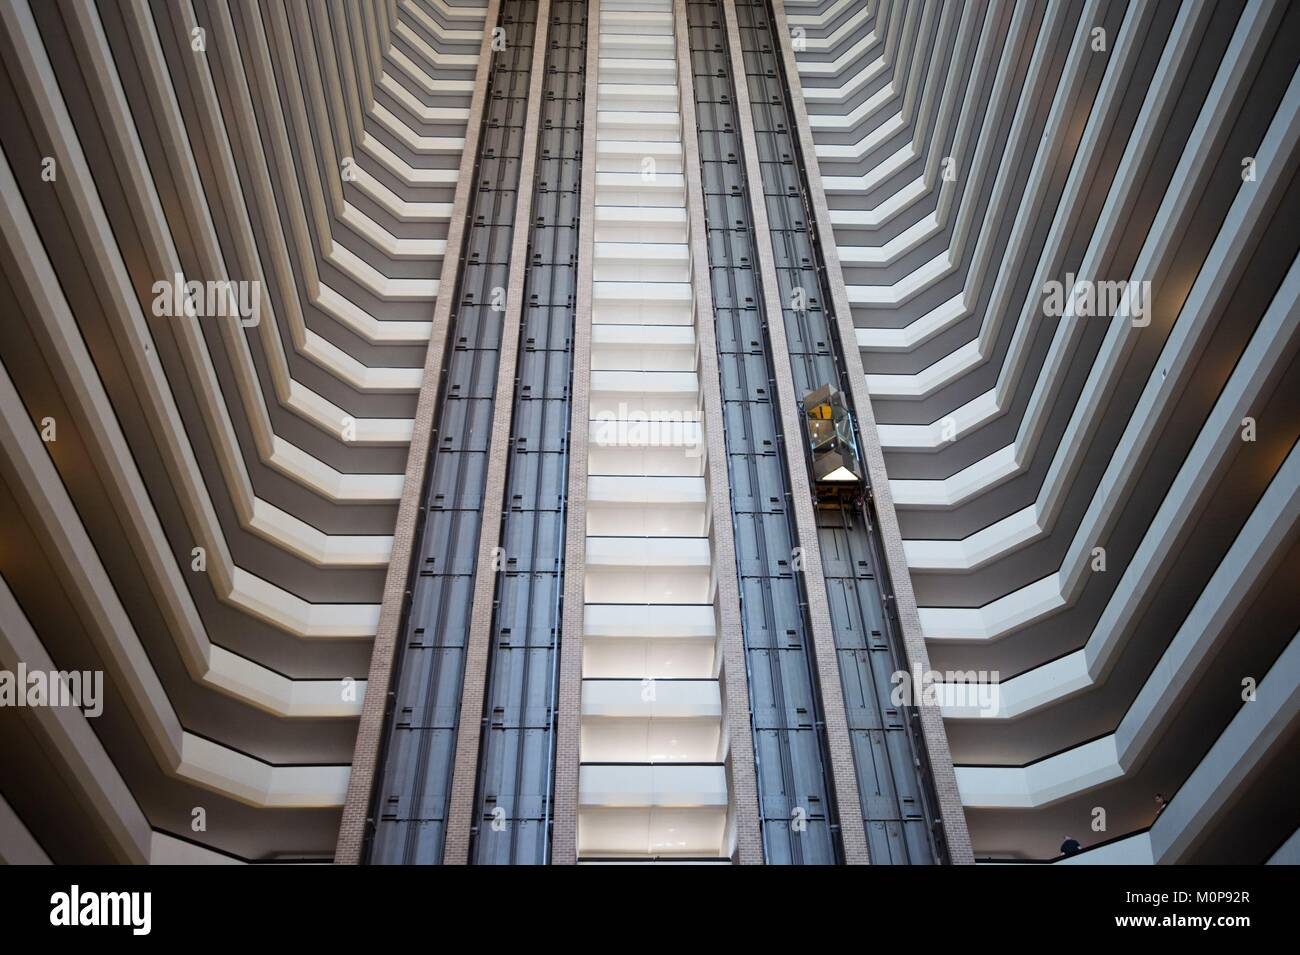 United States,Louisiana,New Orleans,hotel elevator - Stock Image